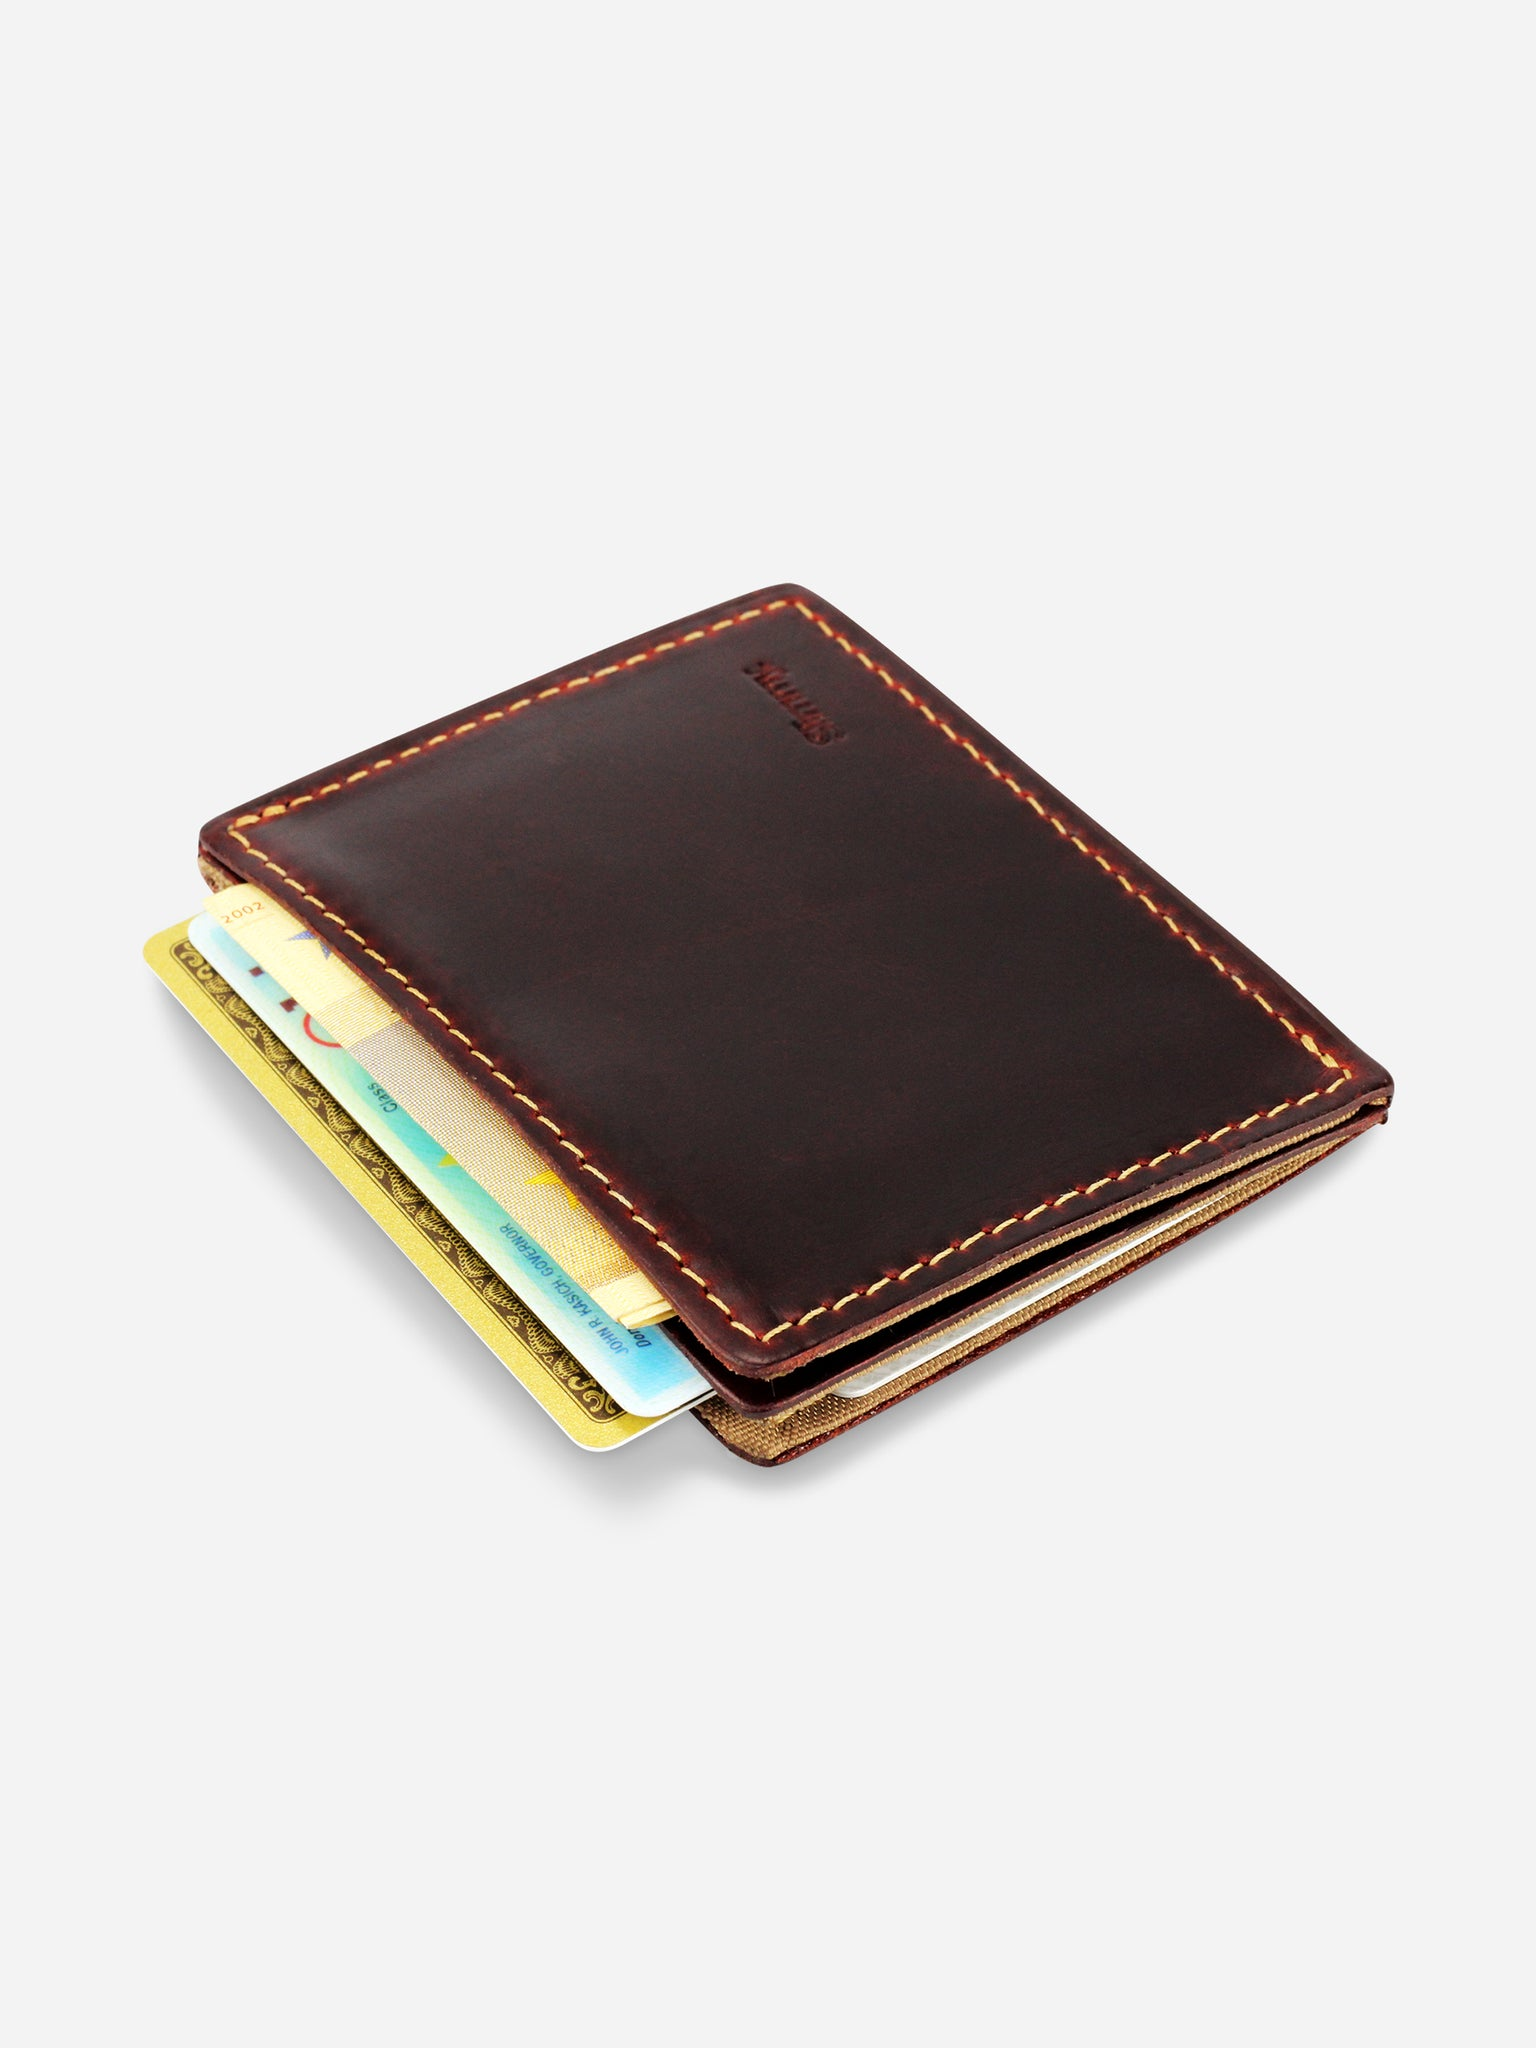 slimmy X2S2 International Wallet - 79mm